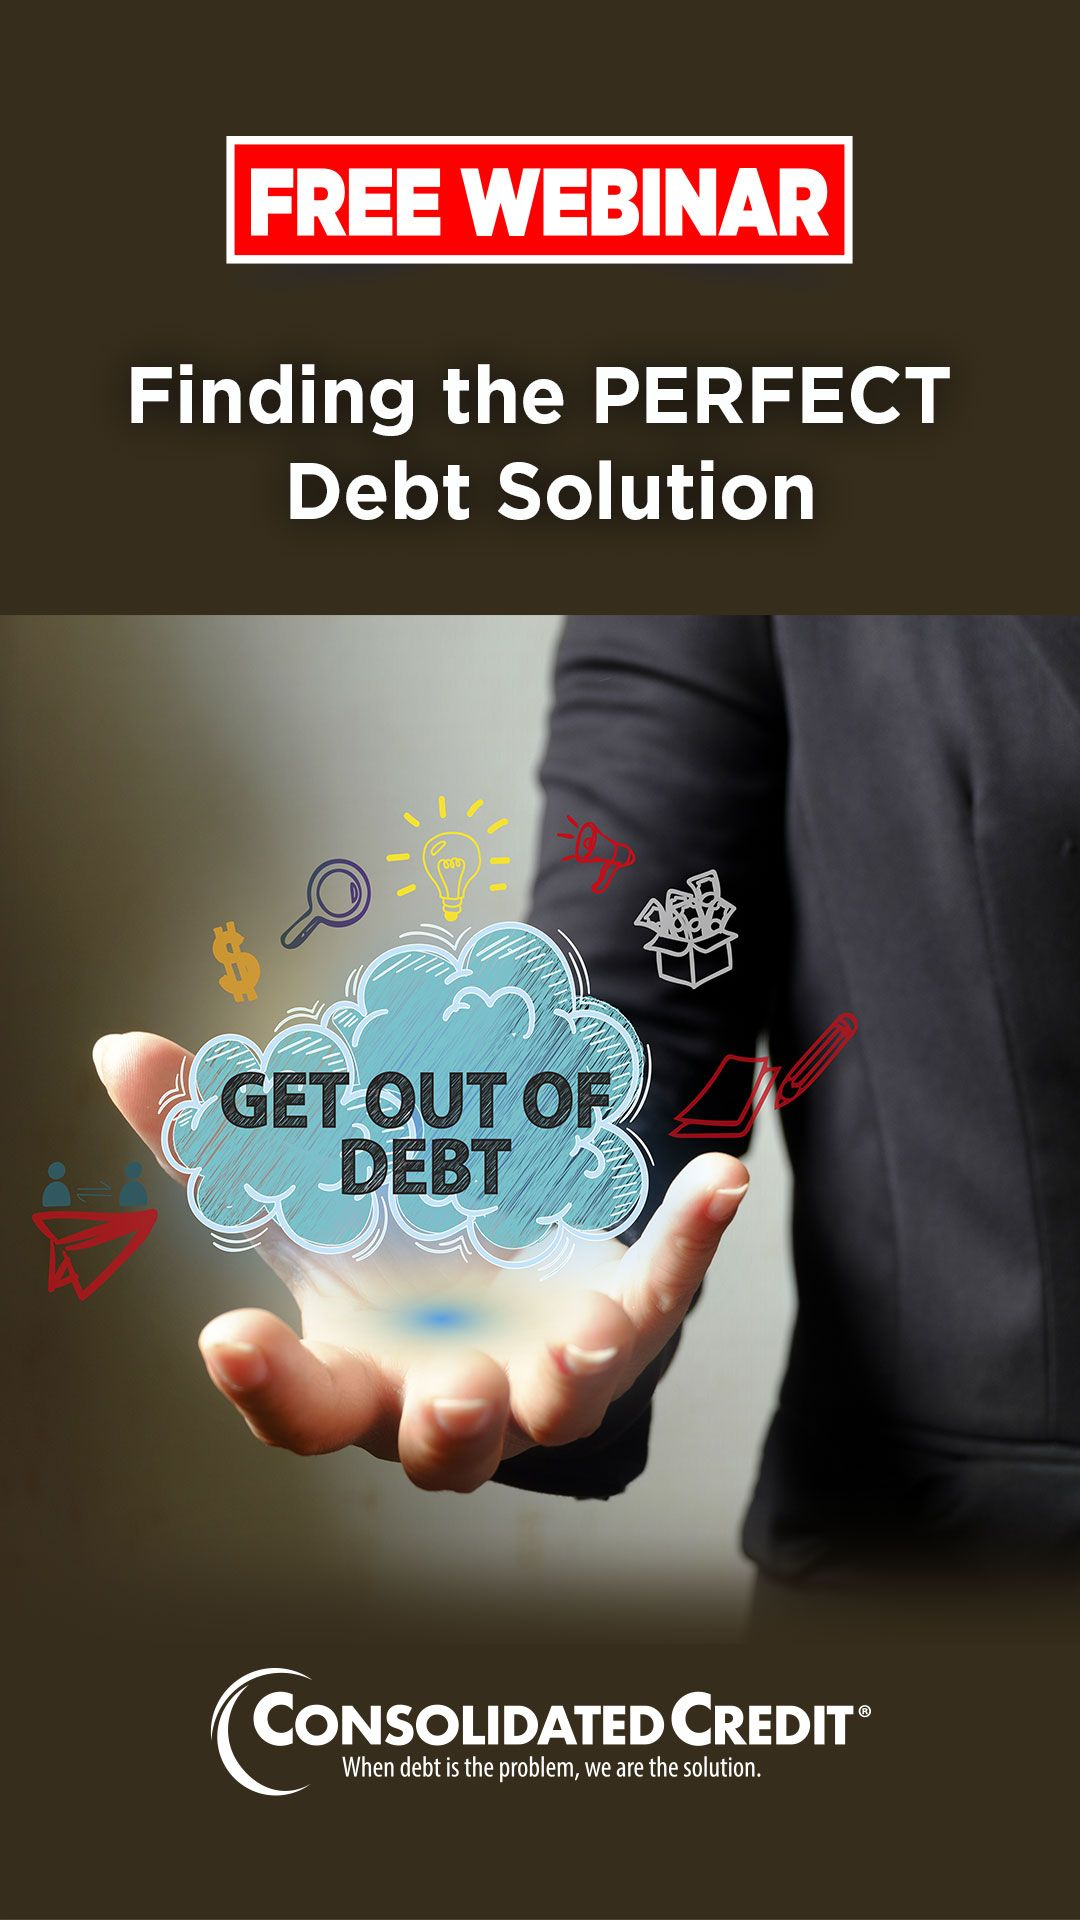 Free webinar finding the perfect debt solution